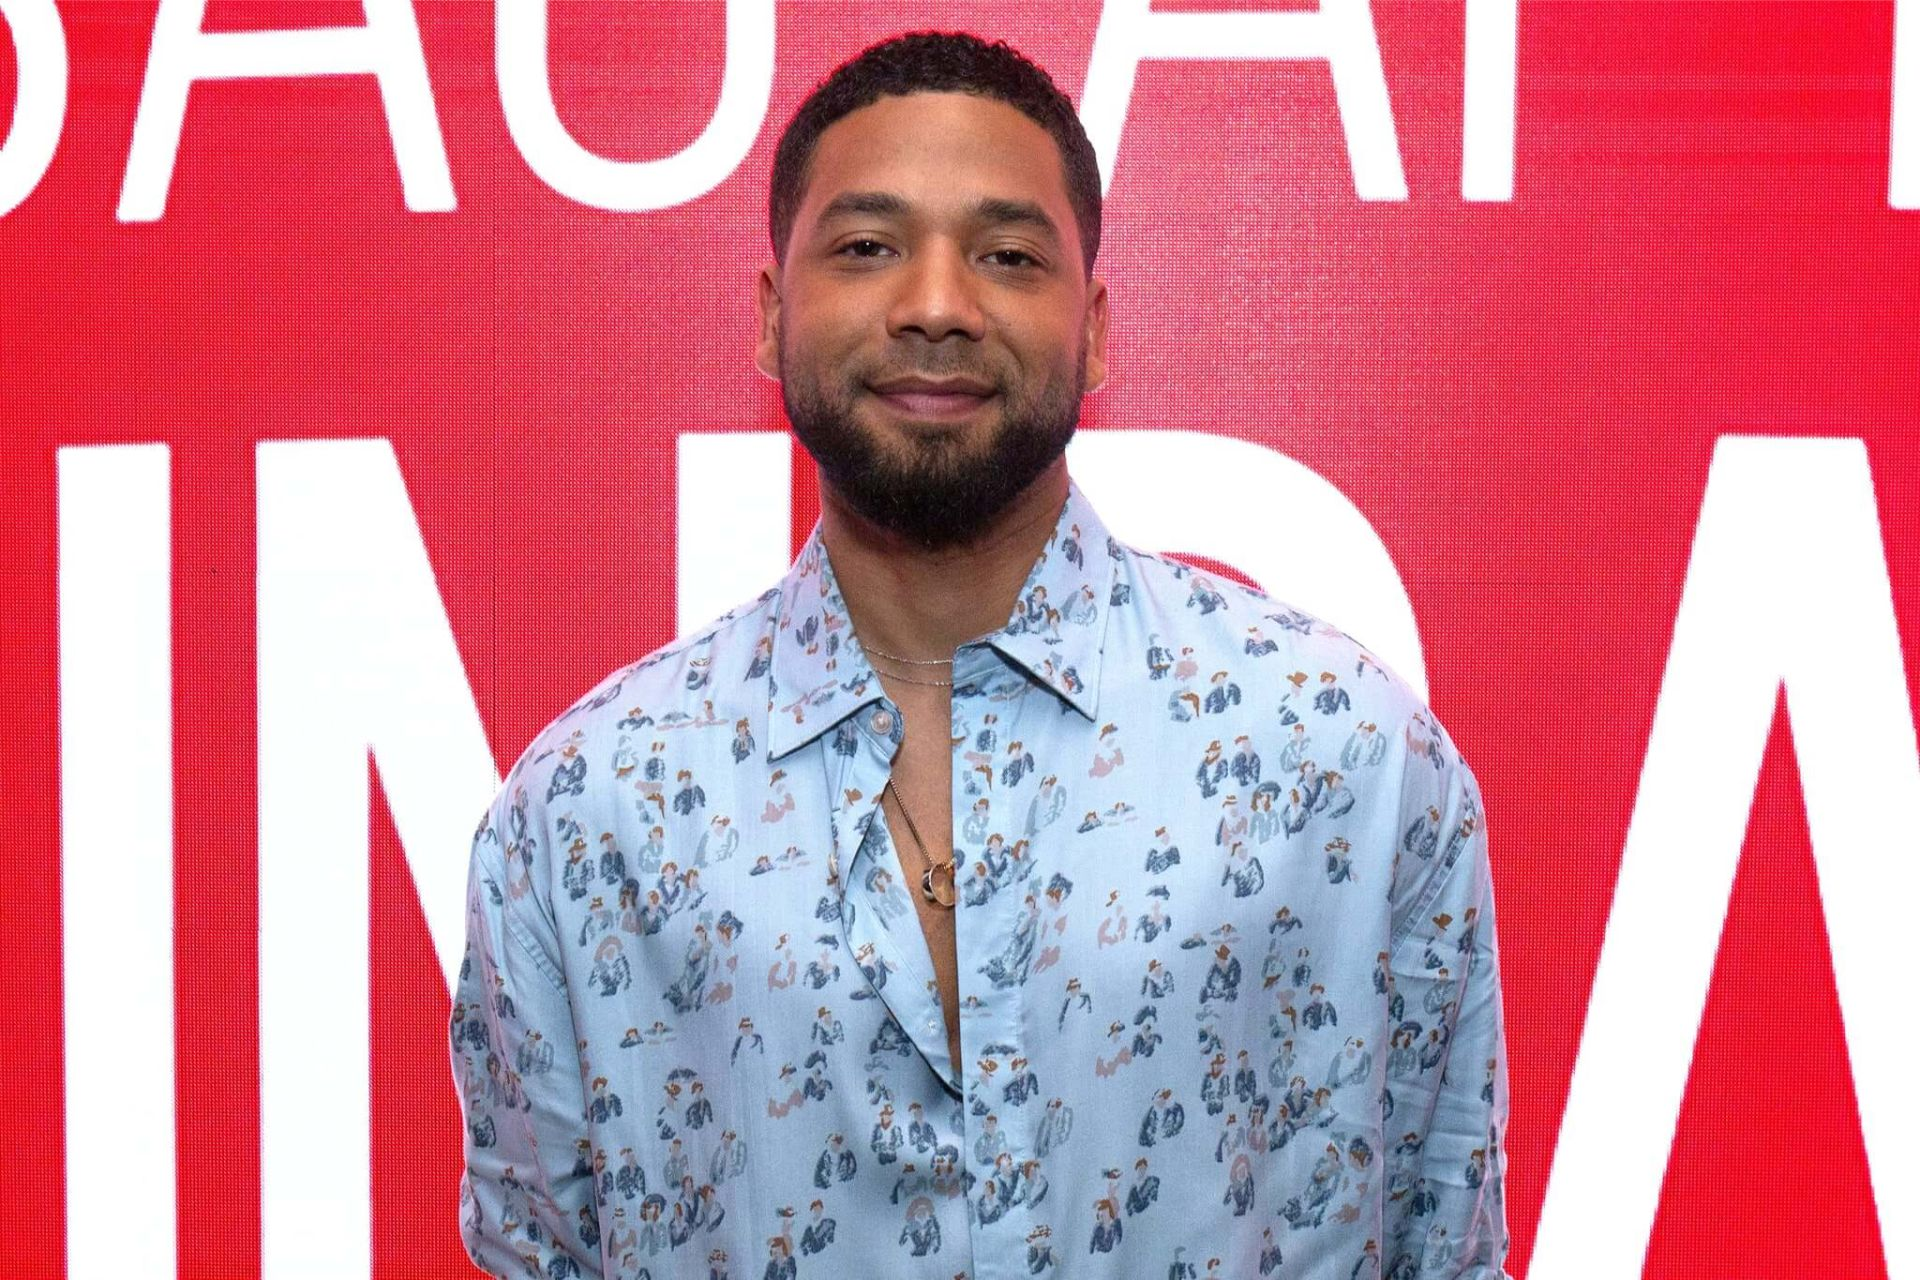 Jussie Smollett hate crime